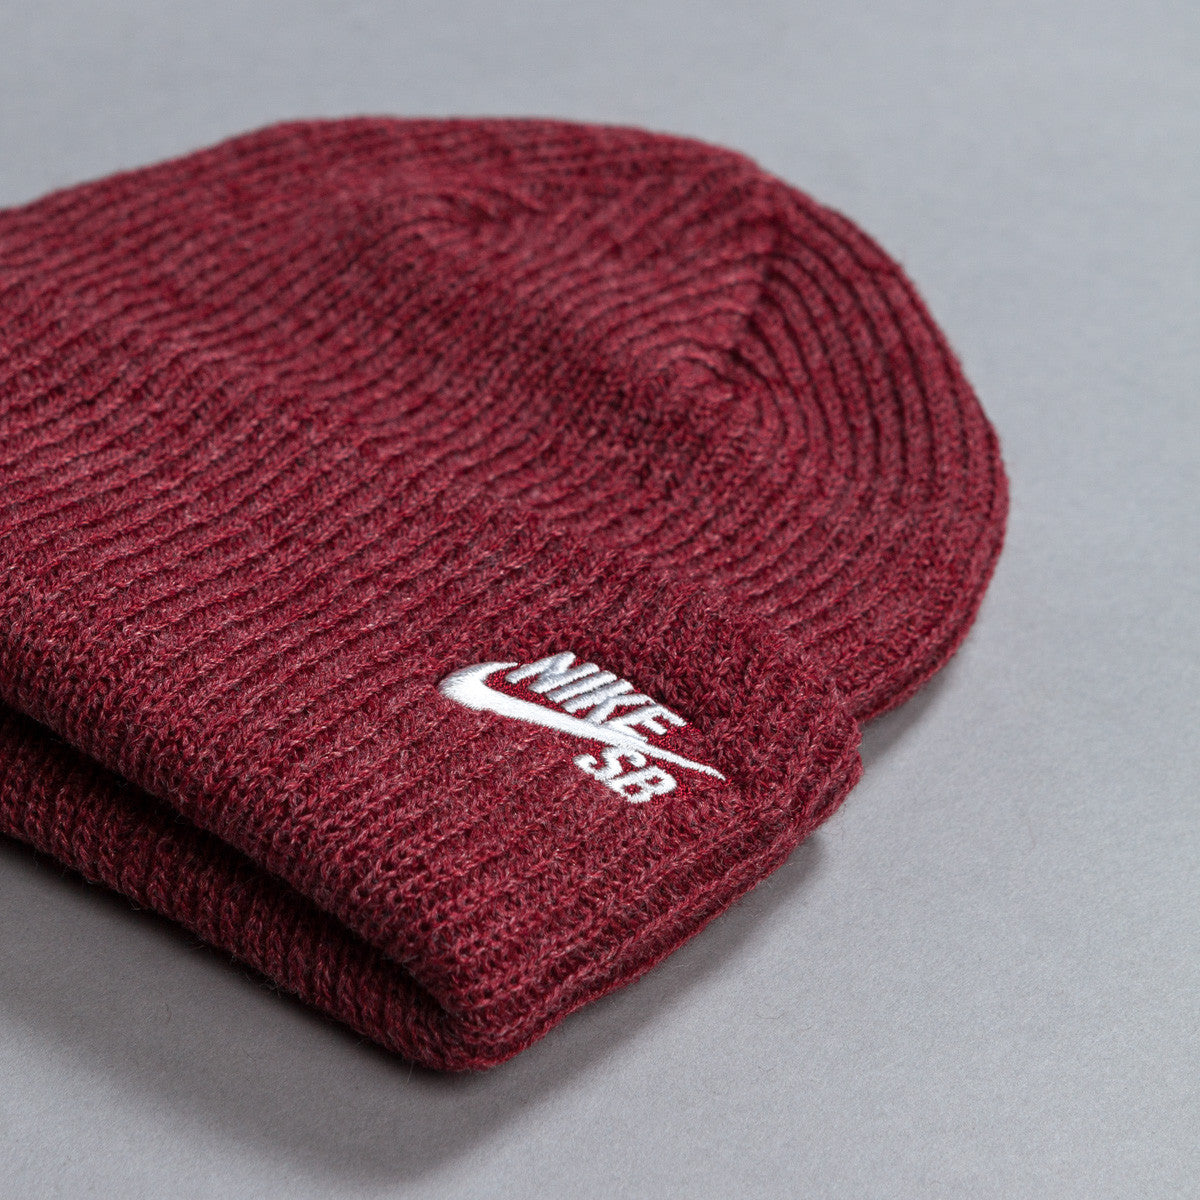 Nike SB Fisherman Beanie Light Gym Red / White